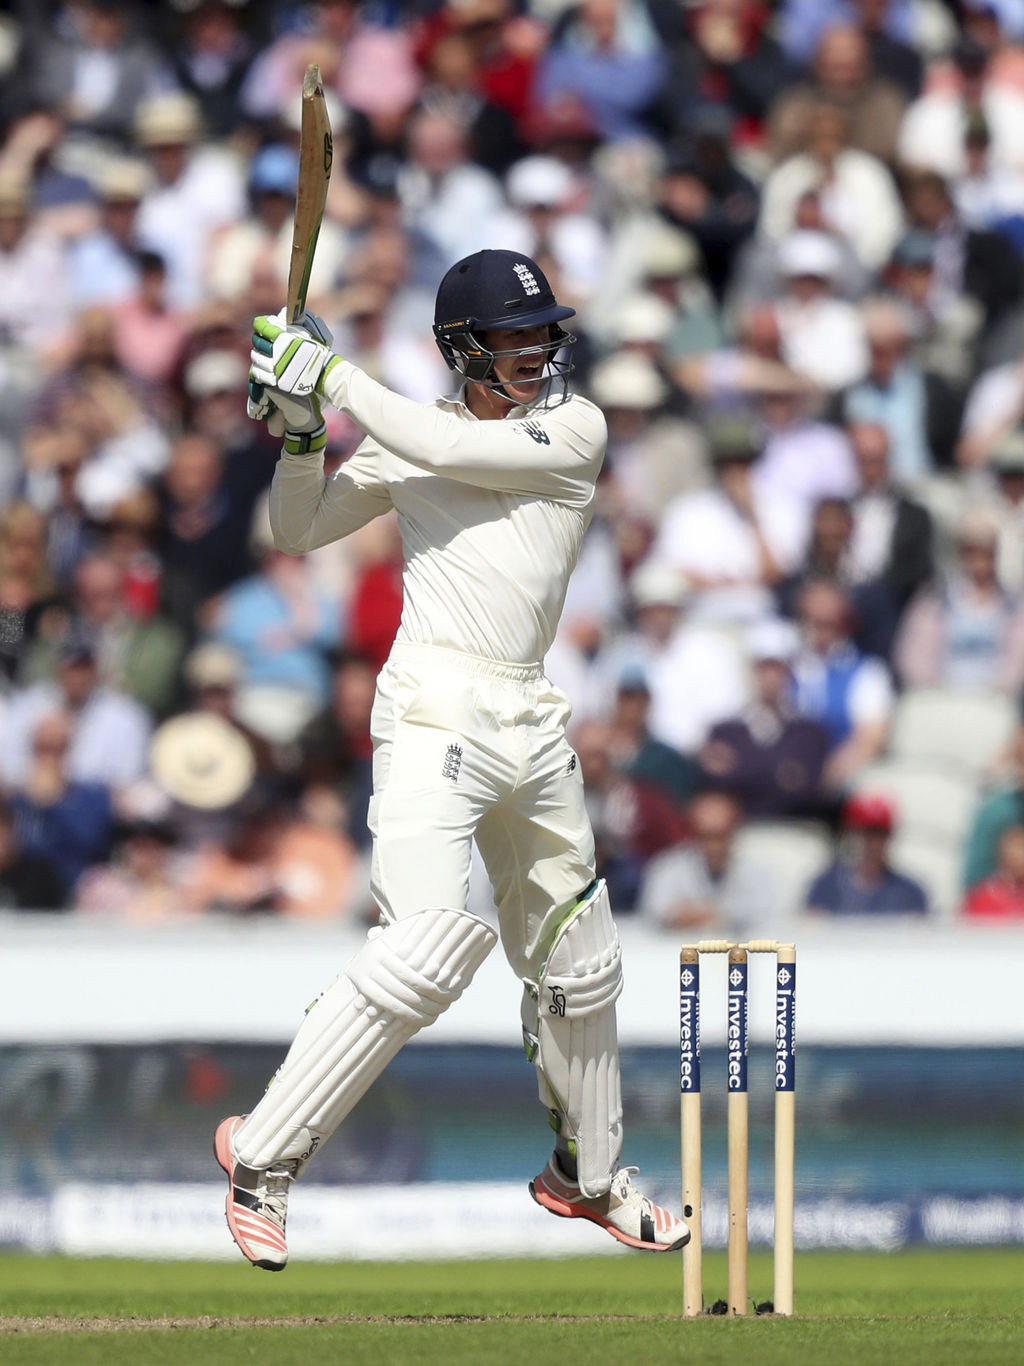 England's Keaton Jennings plays a shot against South Africa during the fourth cricket Test match between England and South Africa at Old Trafford, cri...